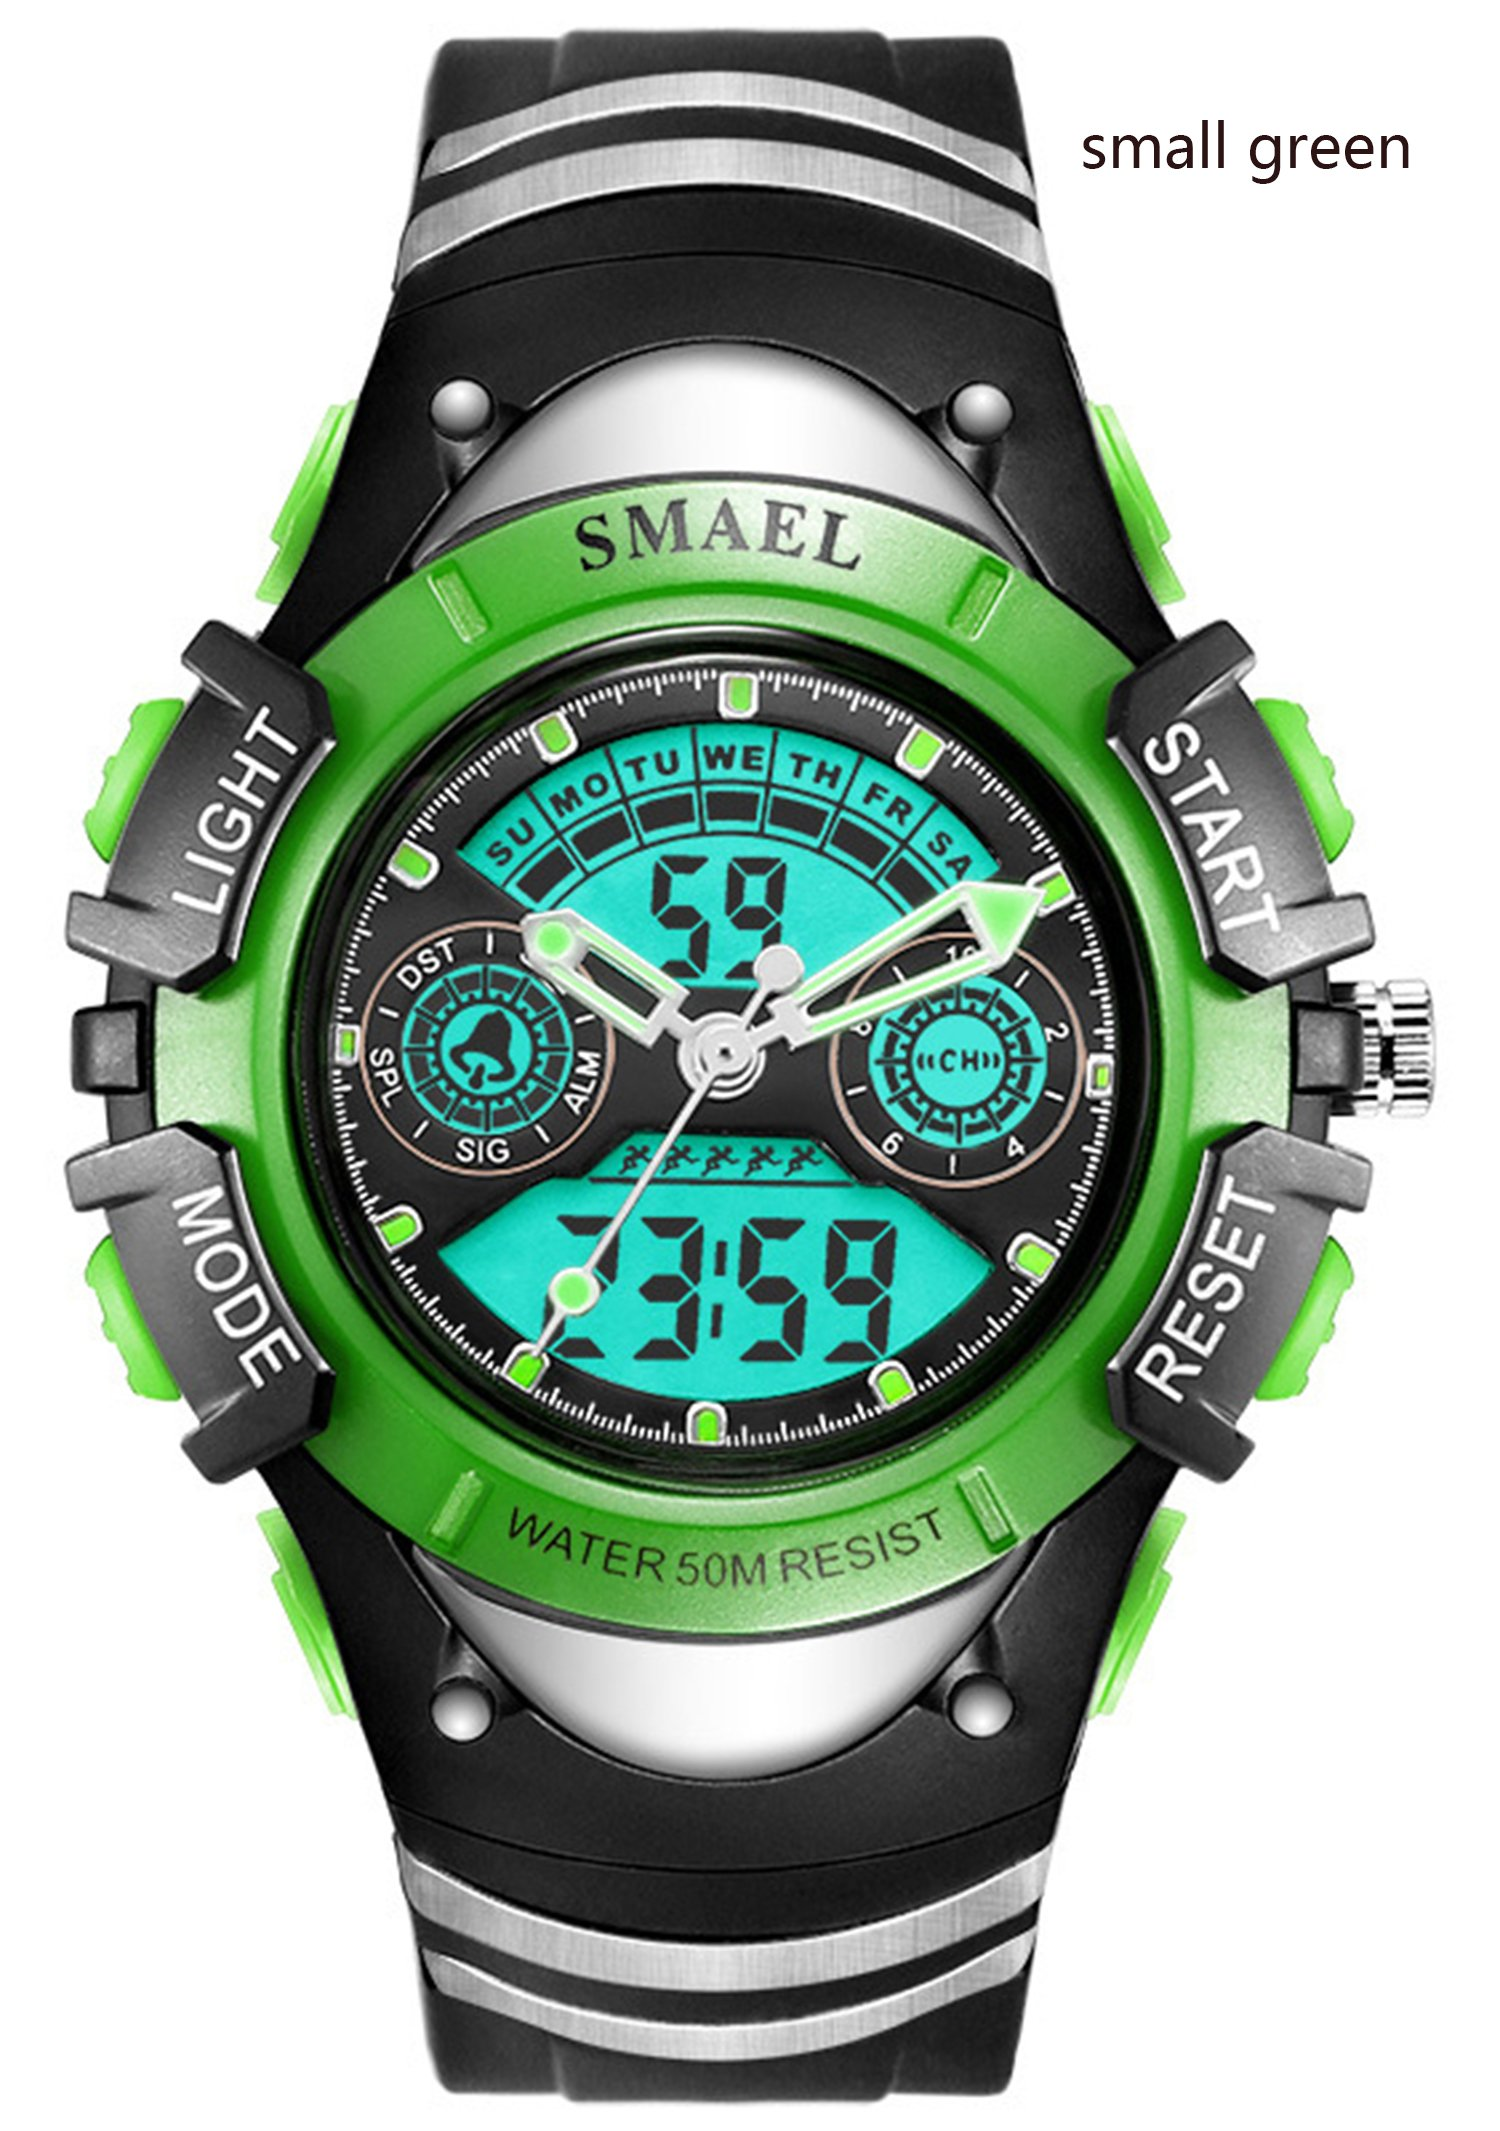 Kids Digital Watch Boys Sports Waterproof Quartz Wrist Watches with Alarm Stopwatch for Youth Childrens (small-green) by carlien